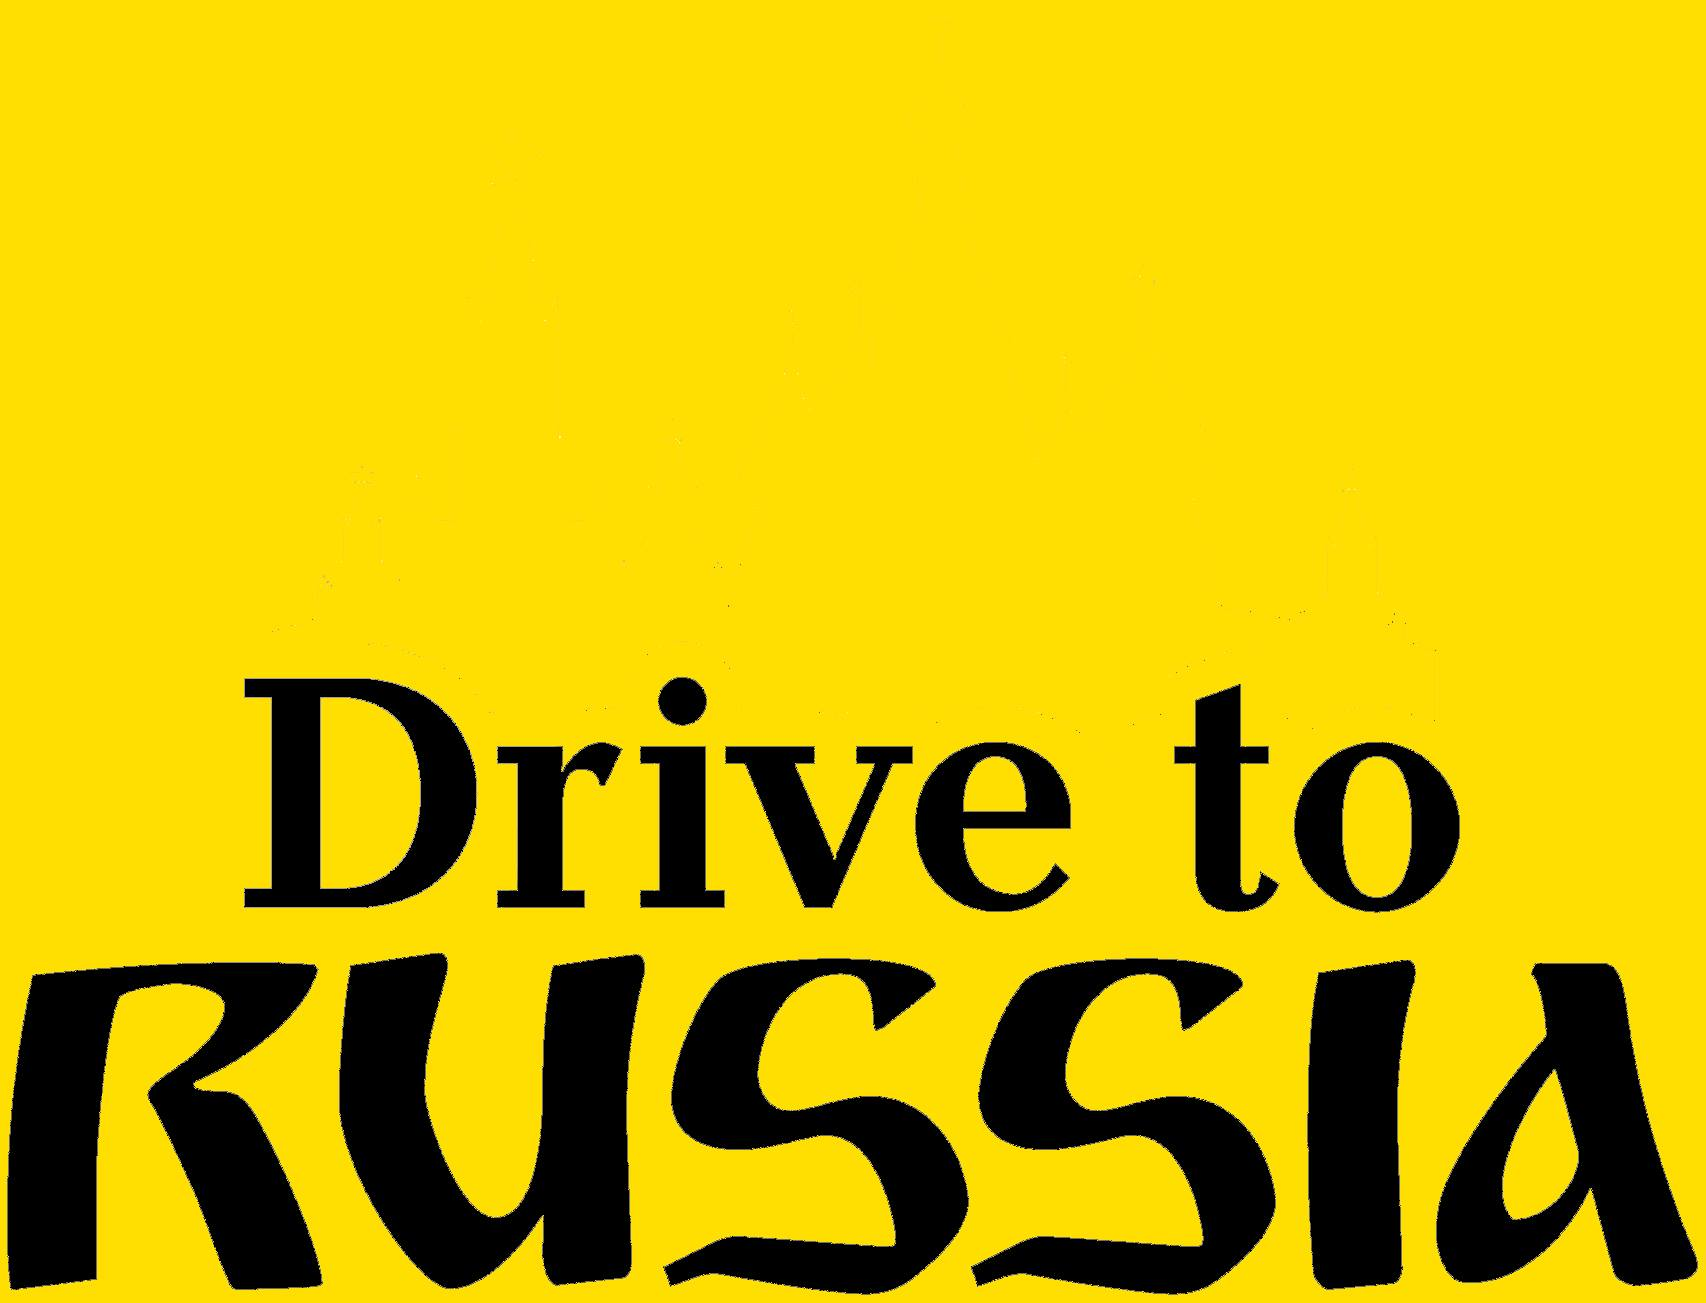 Drive to Russia